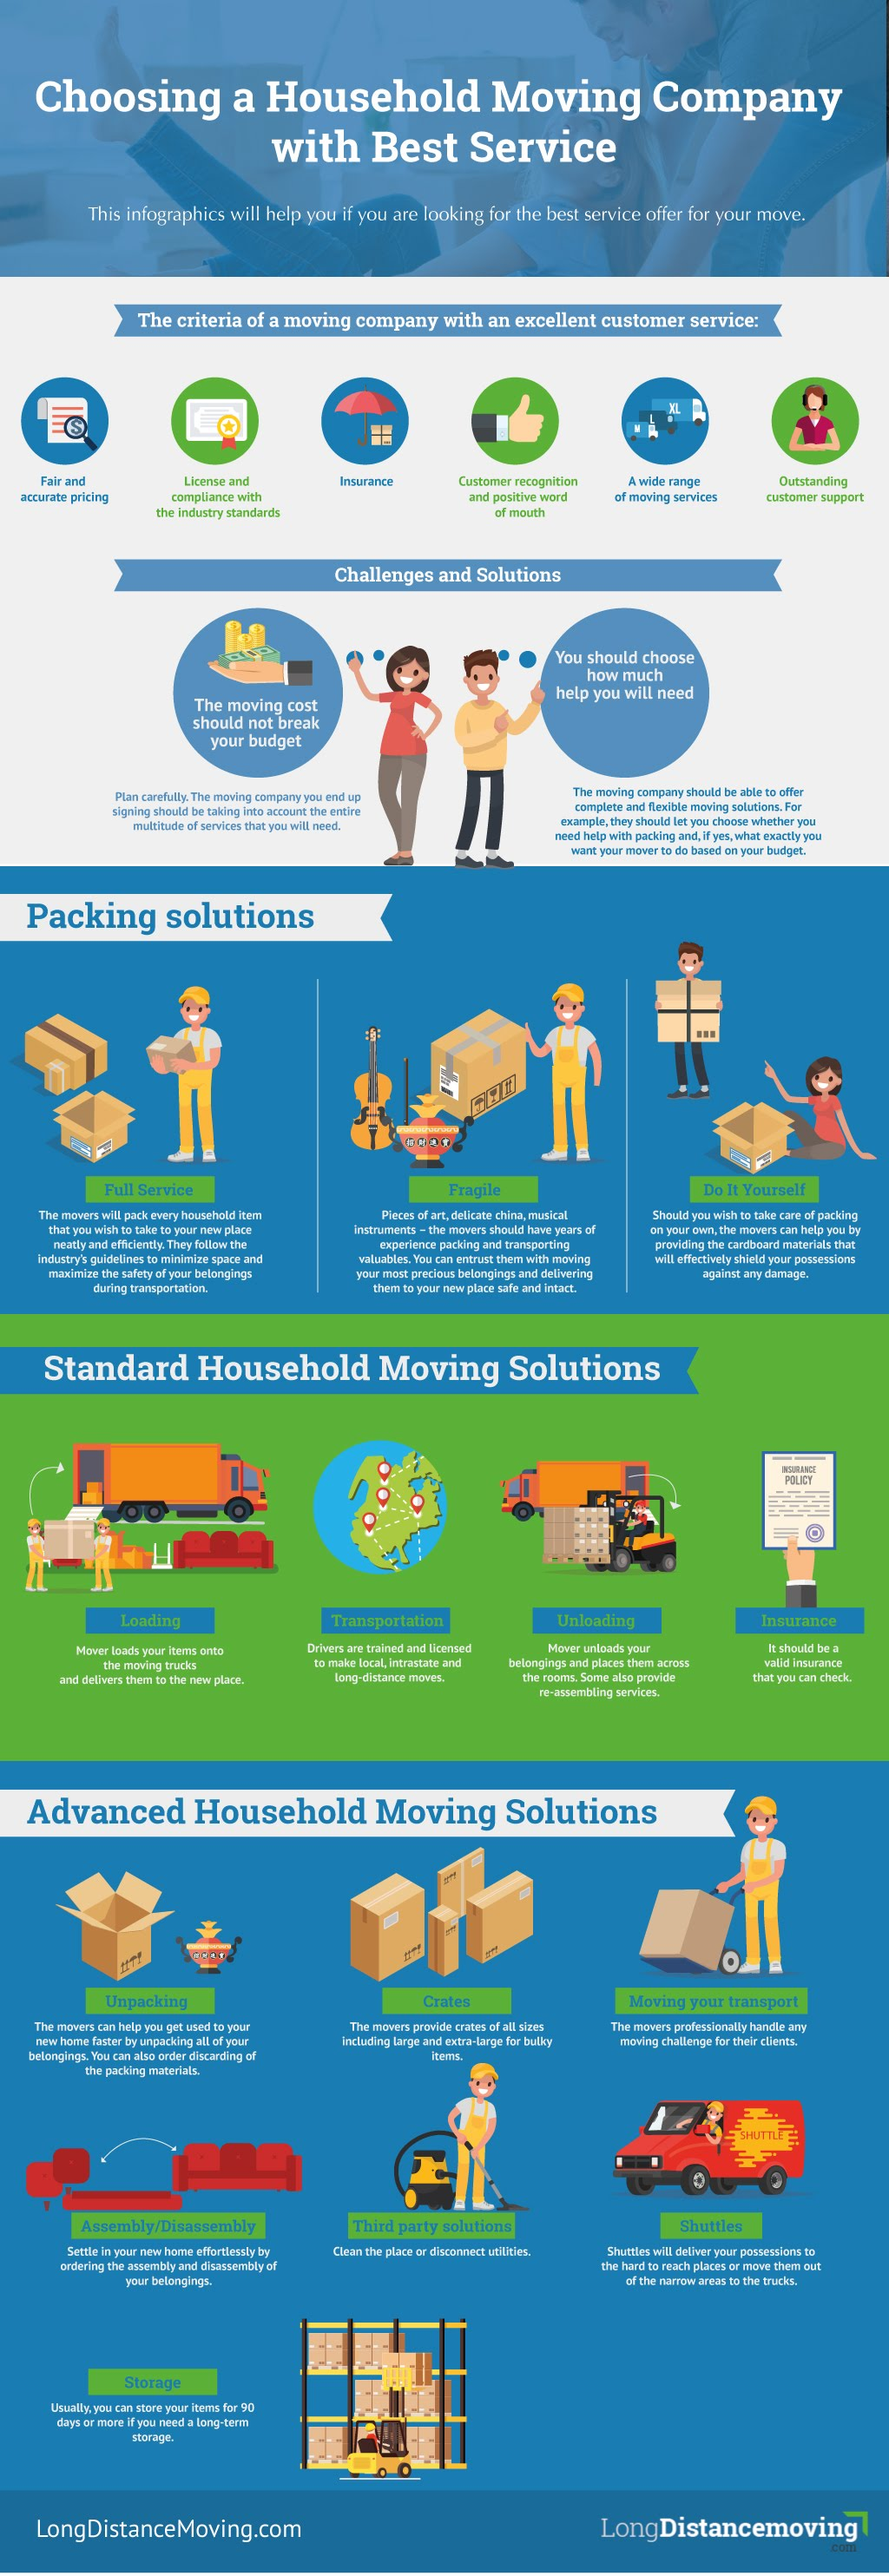 Choosing a Household Moving Company with Best Service